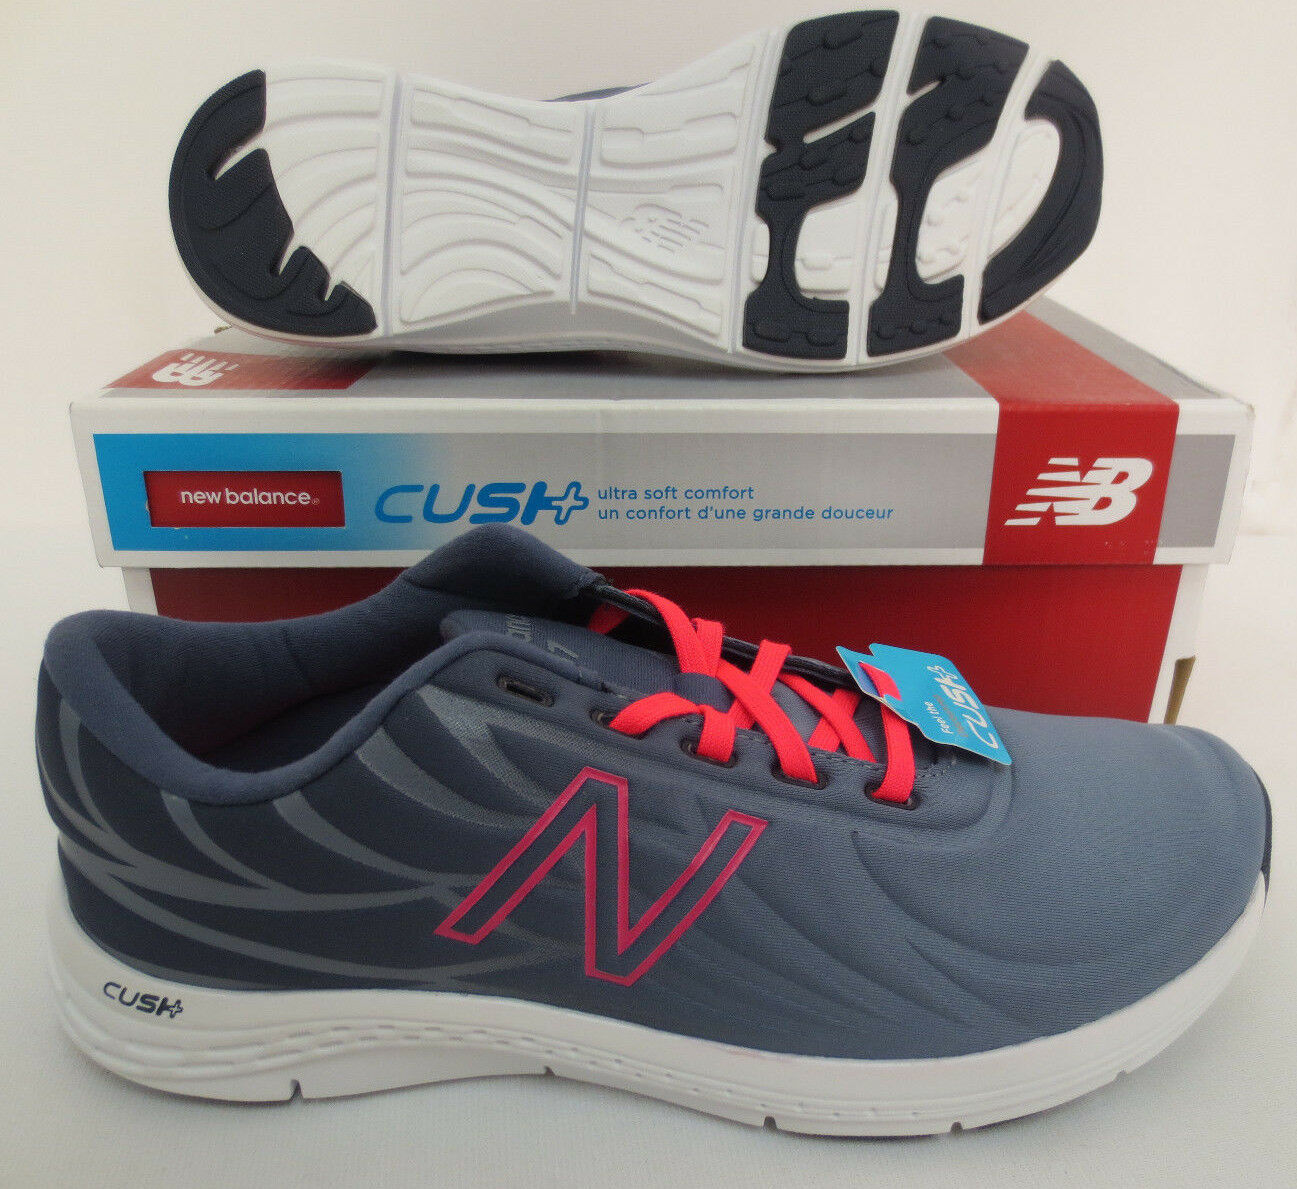 NEU BALANCE WF707HB Damenschuhe SIZE 9.5 Schuhe RUNNING COMFORT GYM WORKOUT ATHLETIC